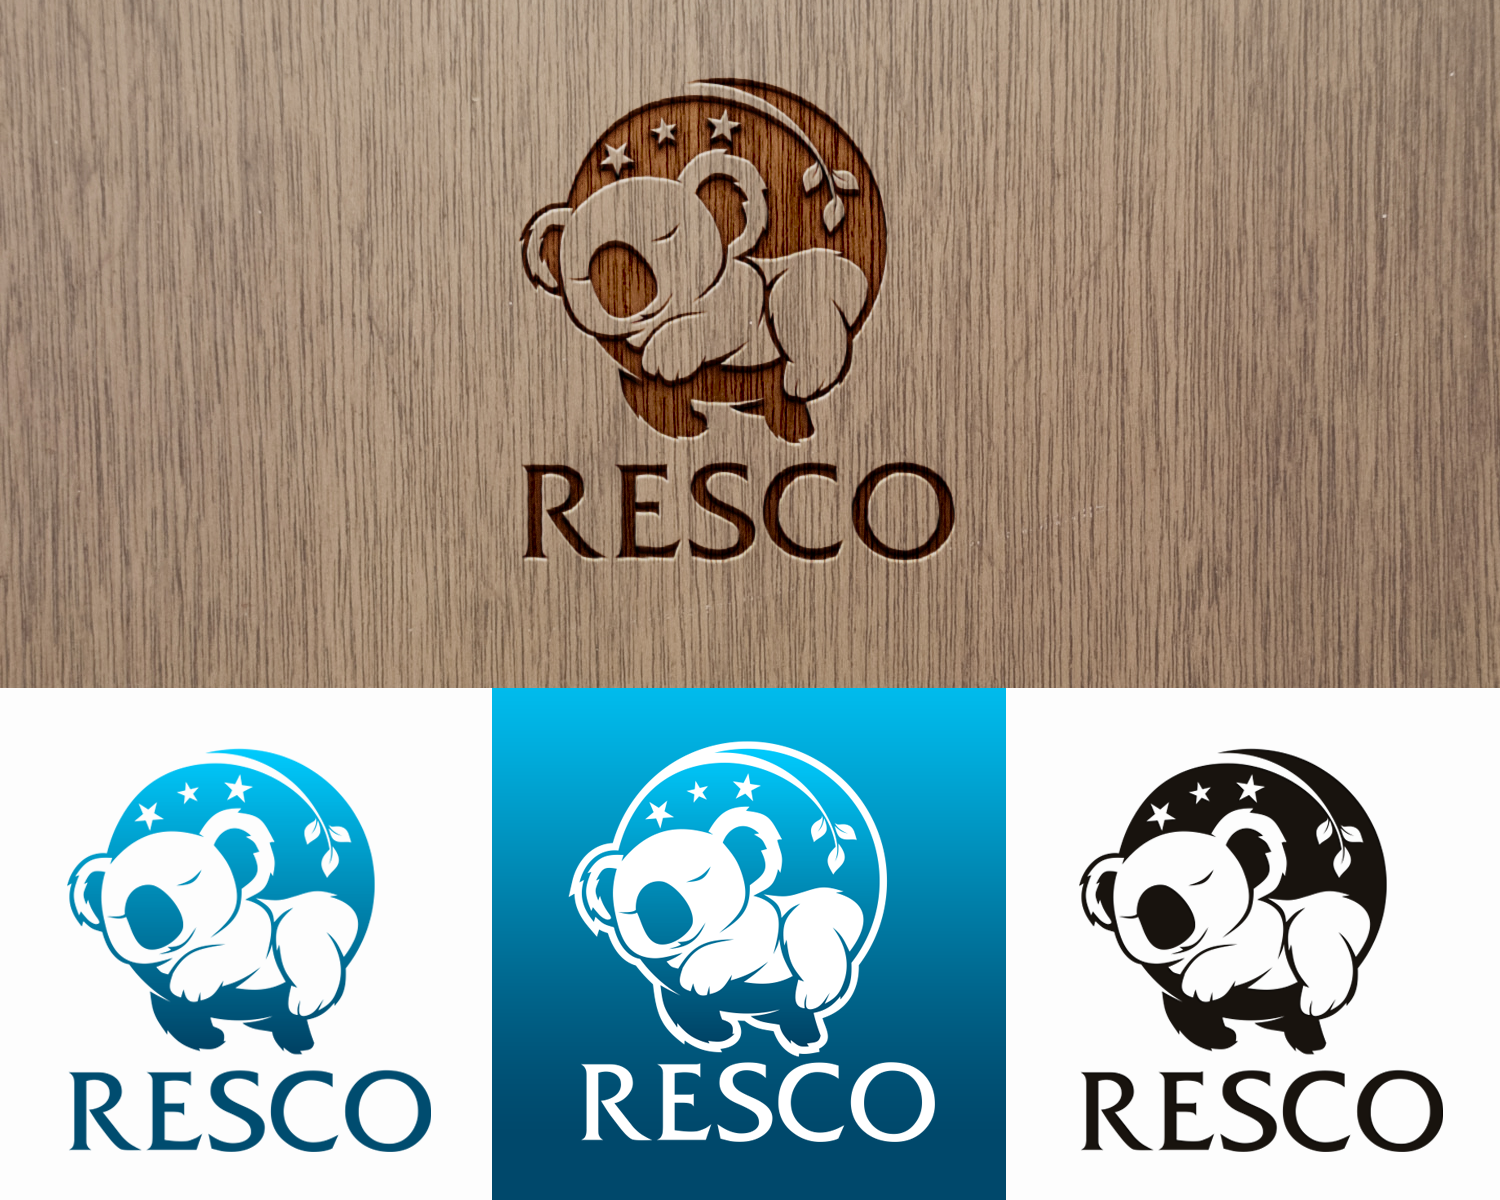 Create a logo that represents comfort, modern, and beauty for home furnishing company